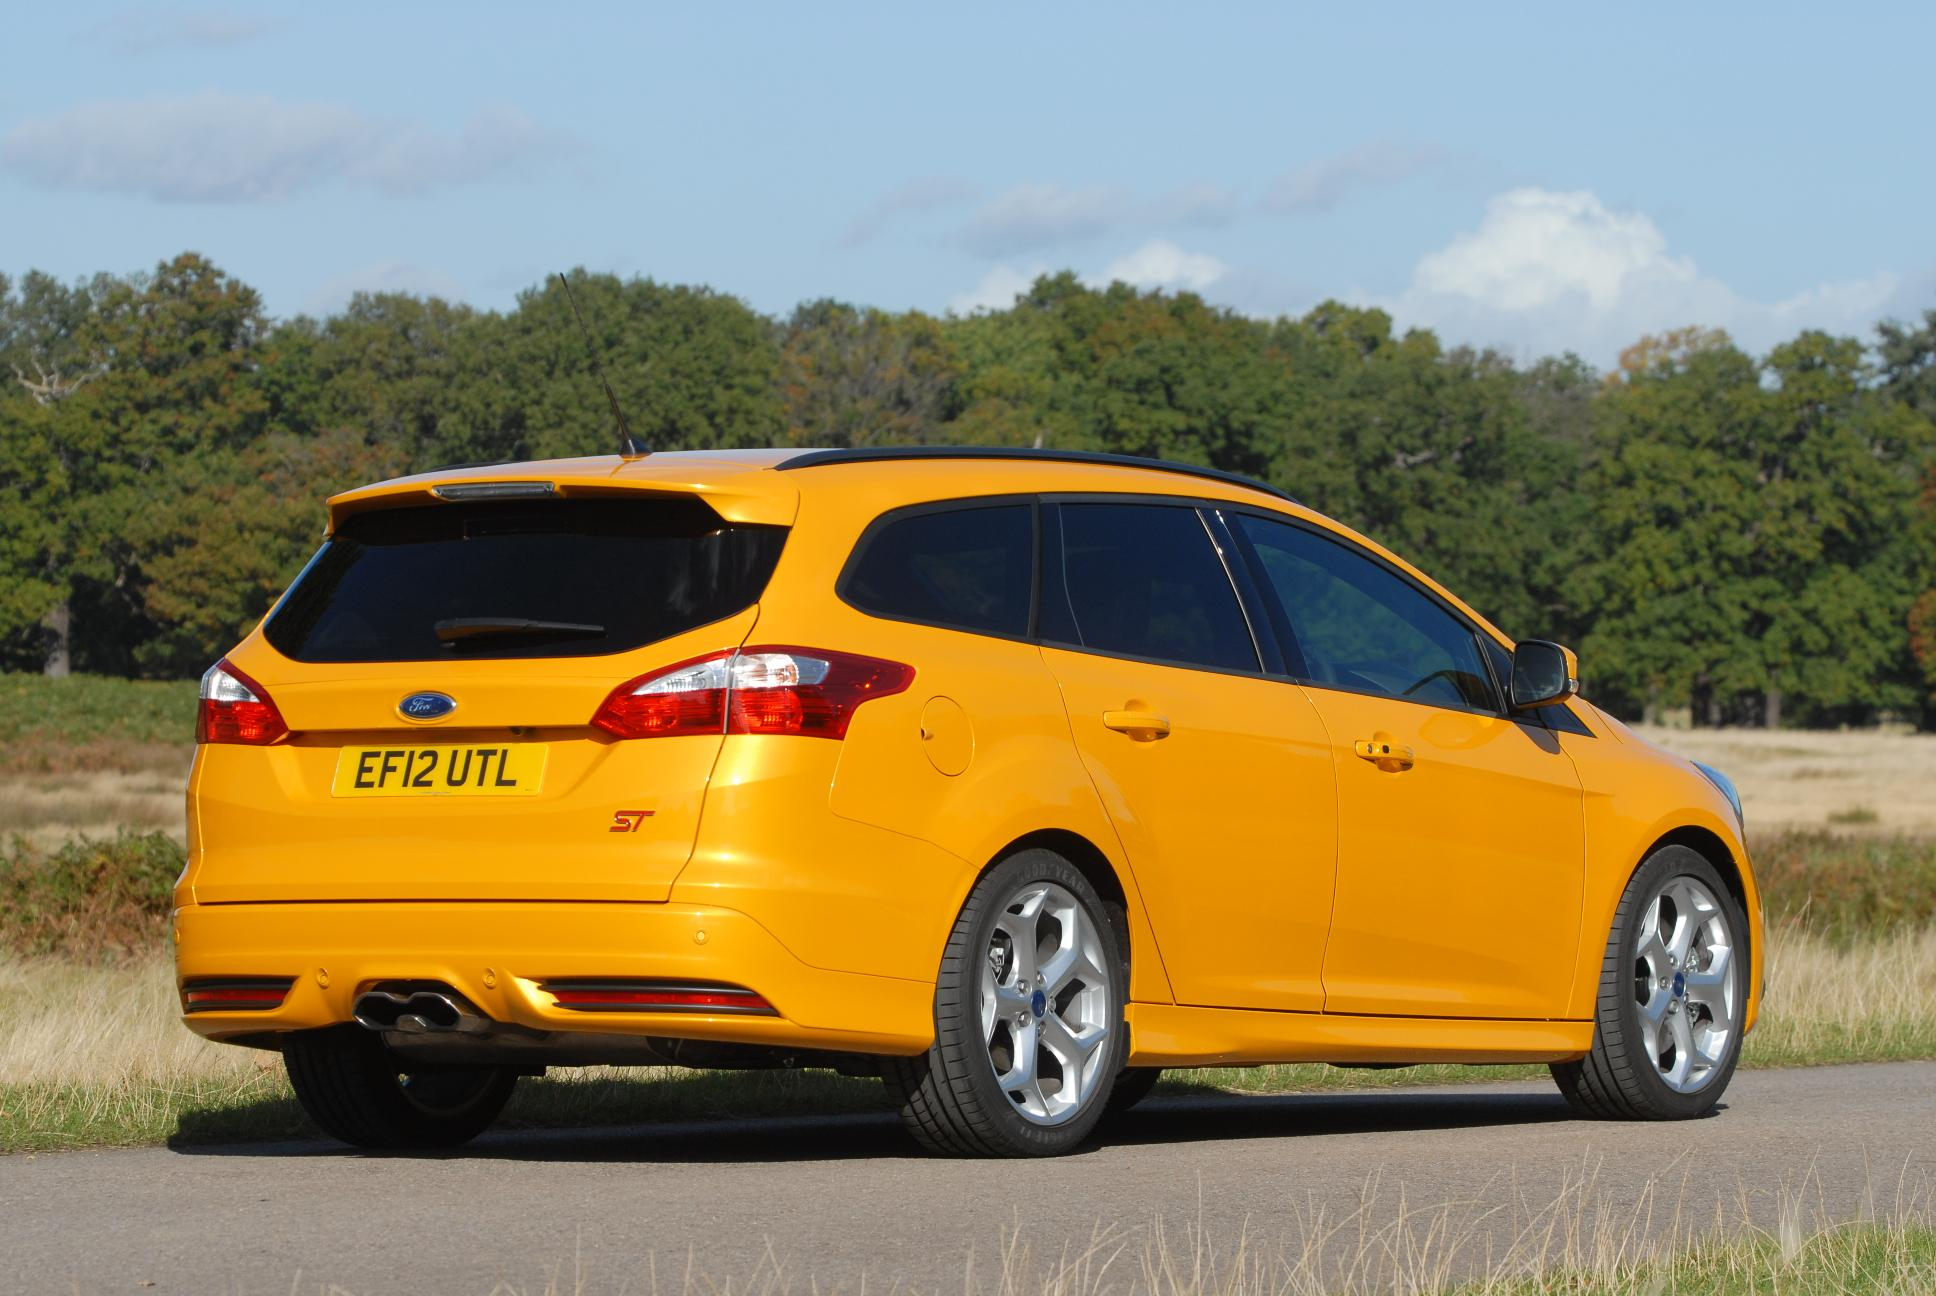 Ford Focus St Estate rear view in yellow